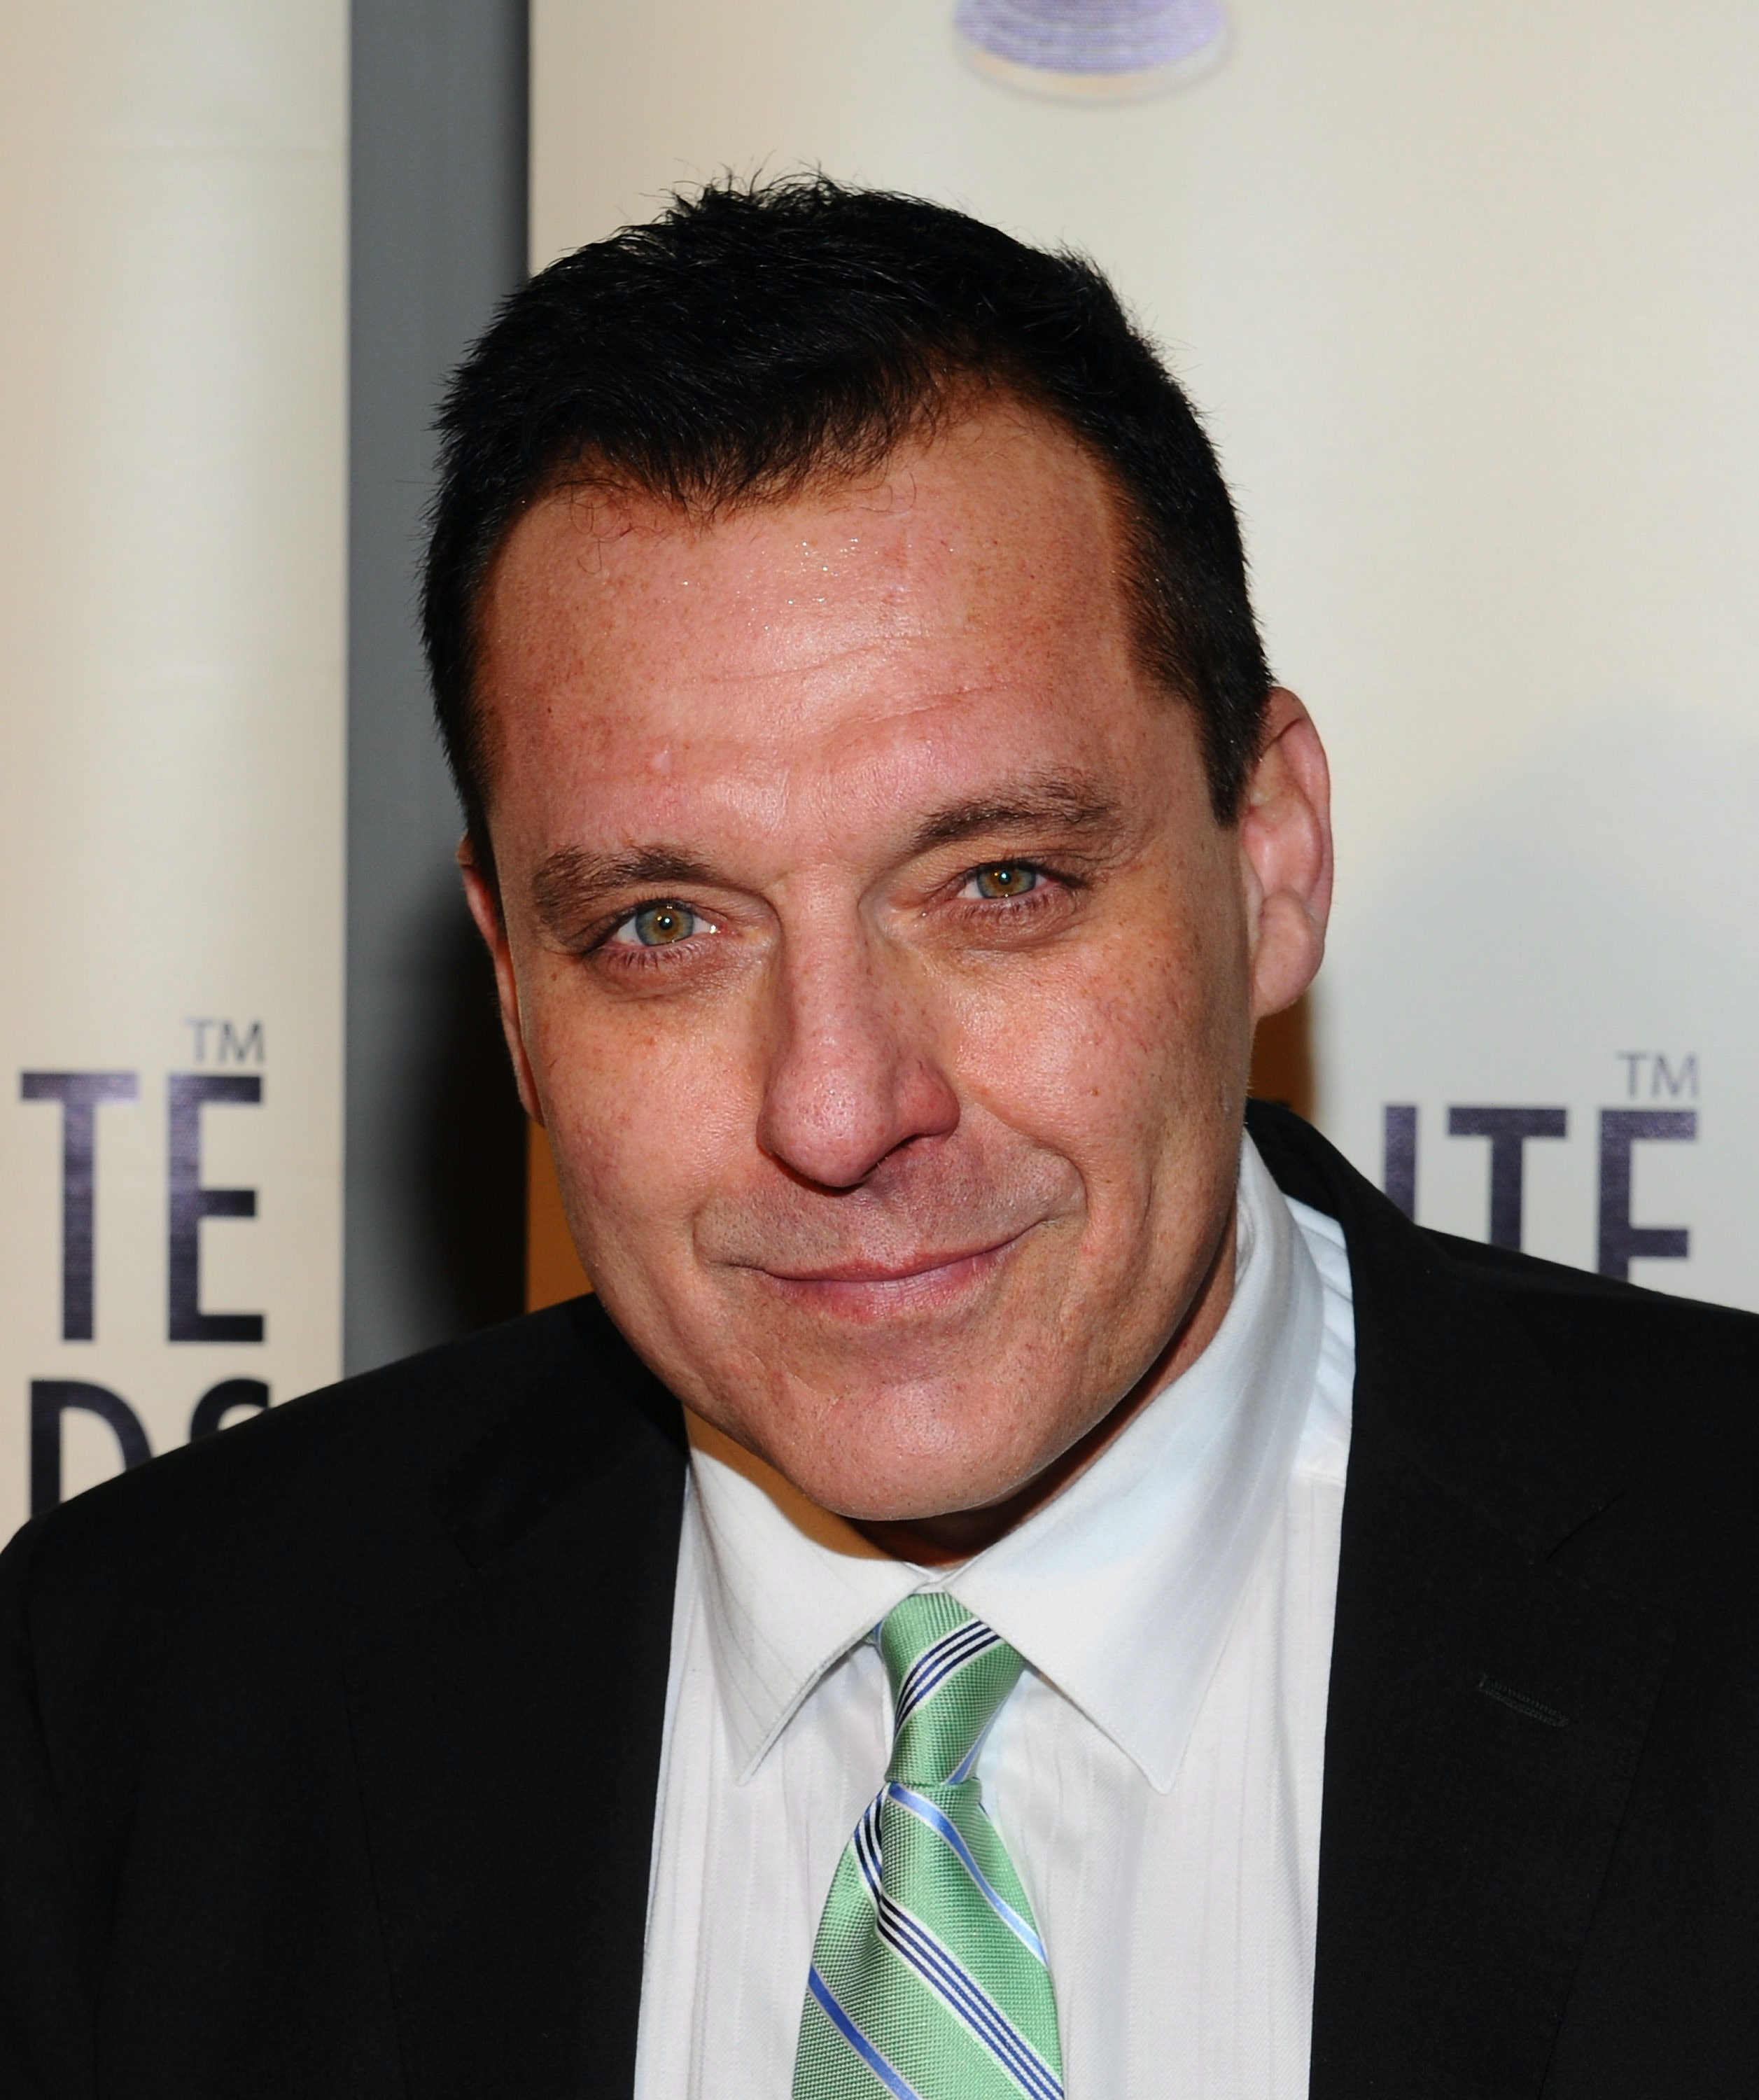 Tom Sizemore Accused of Molesting 11-Year Old Girl on Movie Set